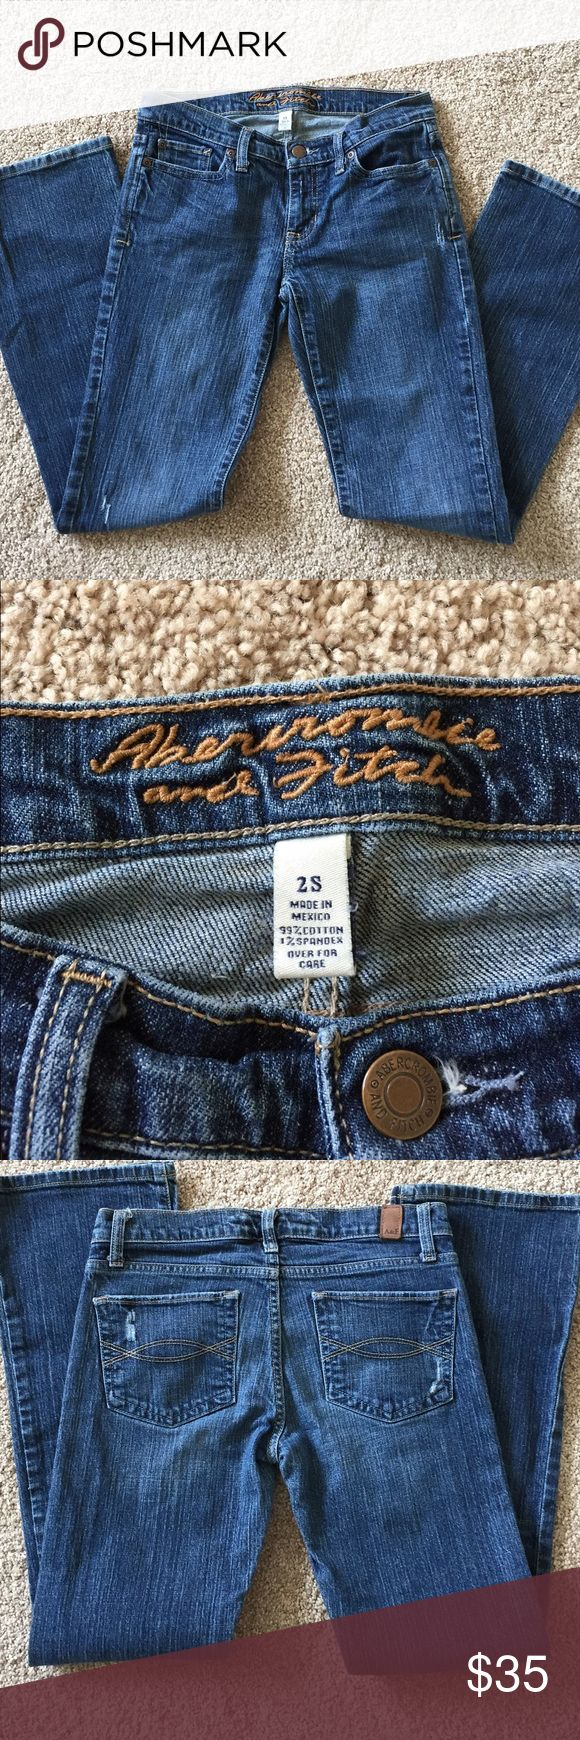 Abercrombie and Fitch Jeans! These jeans from Abercrombie and Fitch are in fantastic condition! Abercrombie & Fitch Jeans Boot Cut